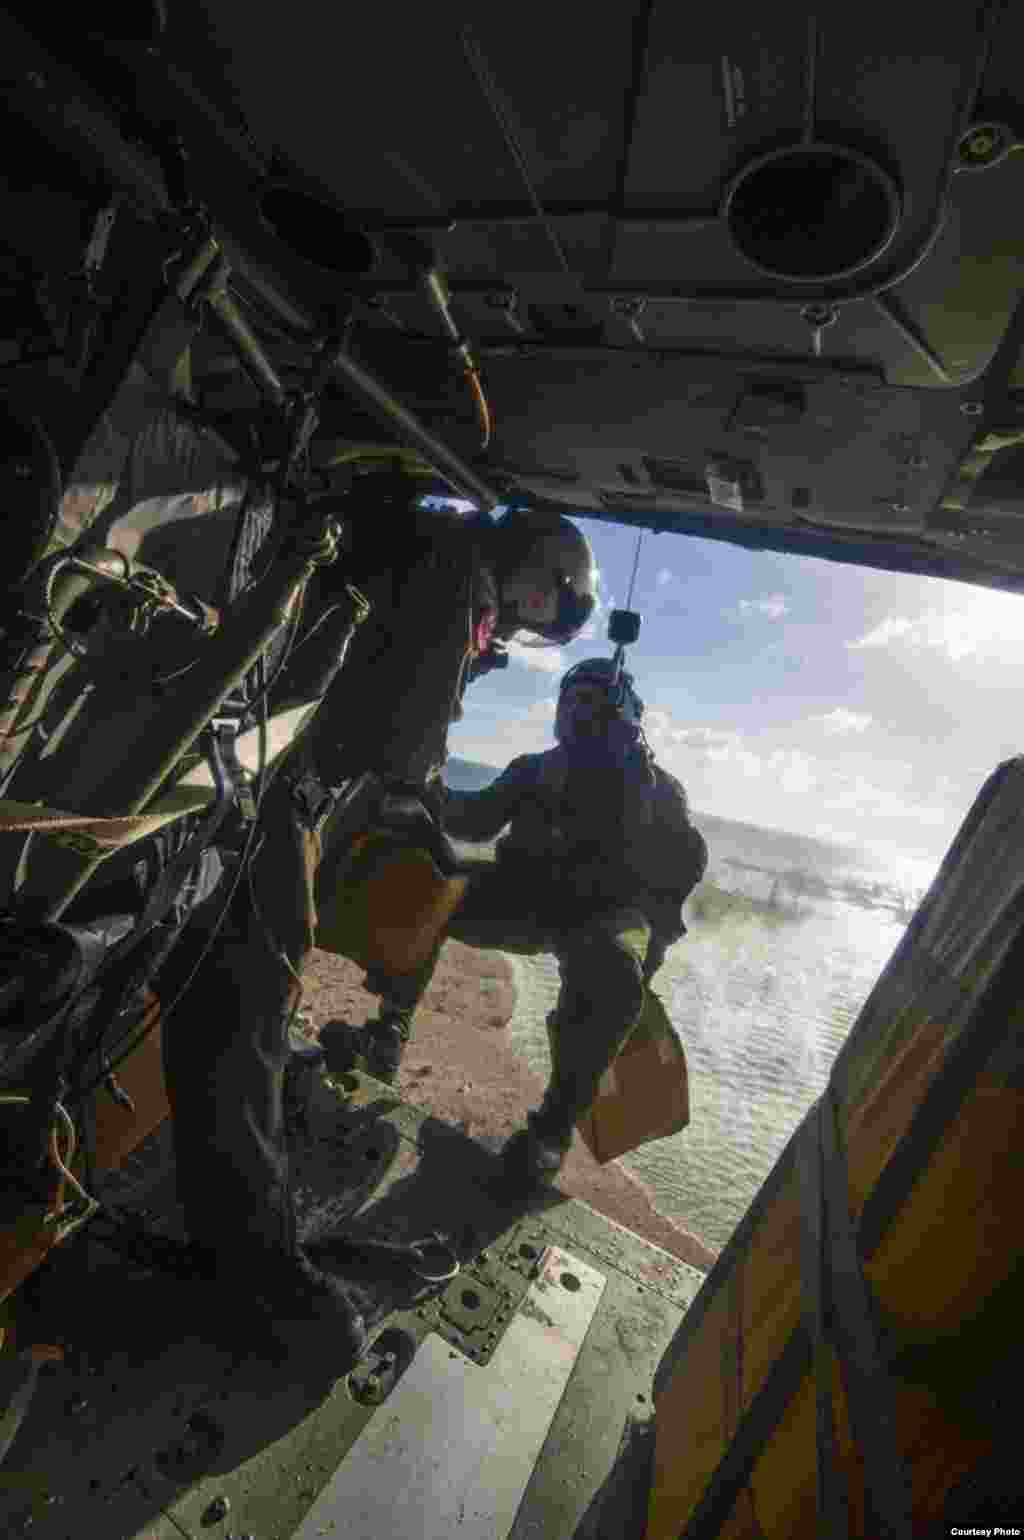 A Naval Aircrewman prepares to drop supplies, Tacloban, Philippines, Nov., 14, 2013. (U.S. Navy)